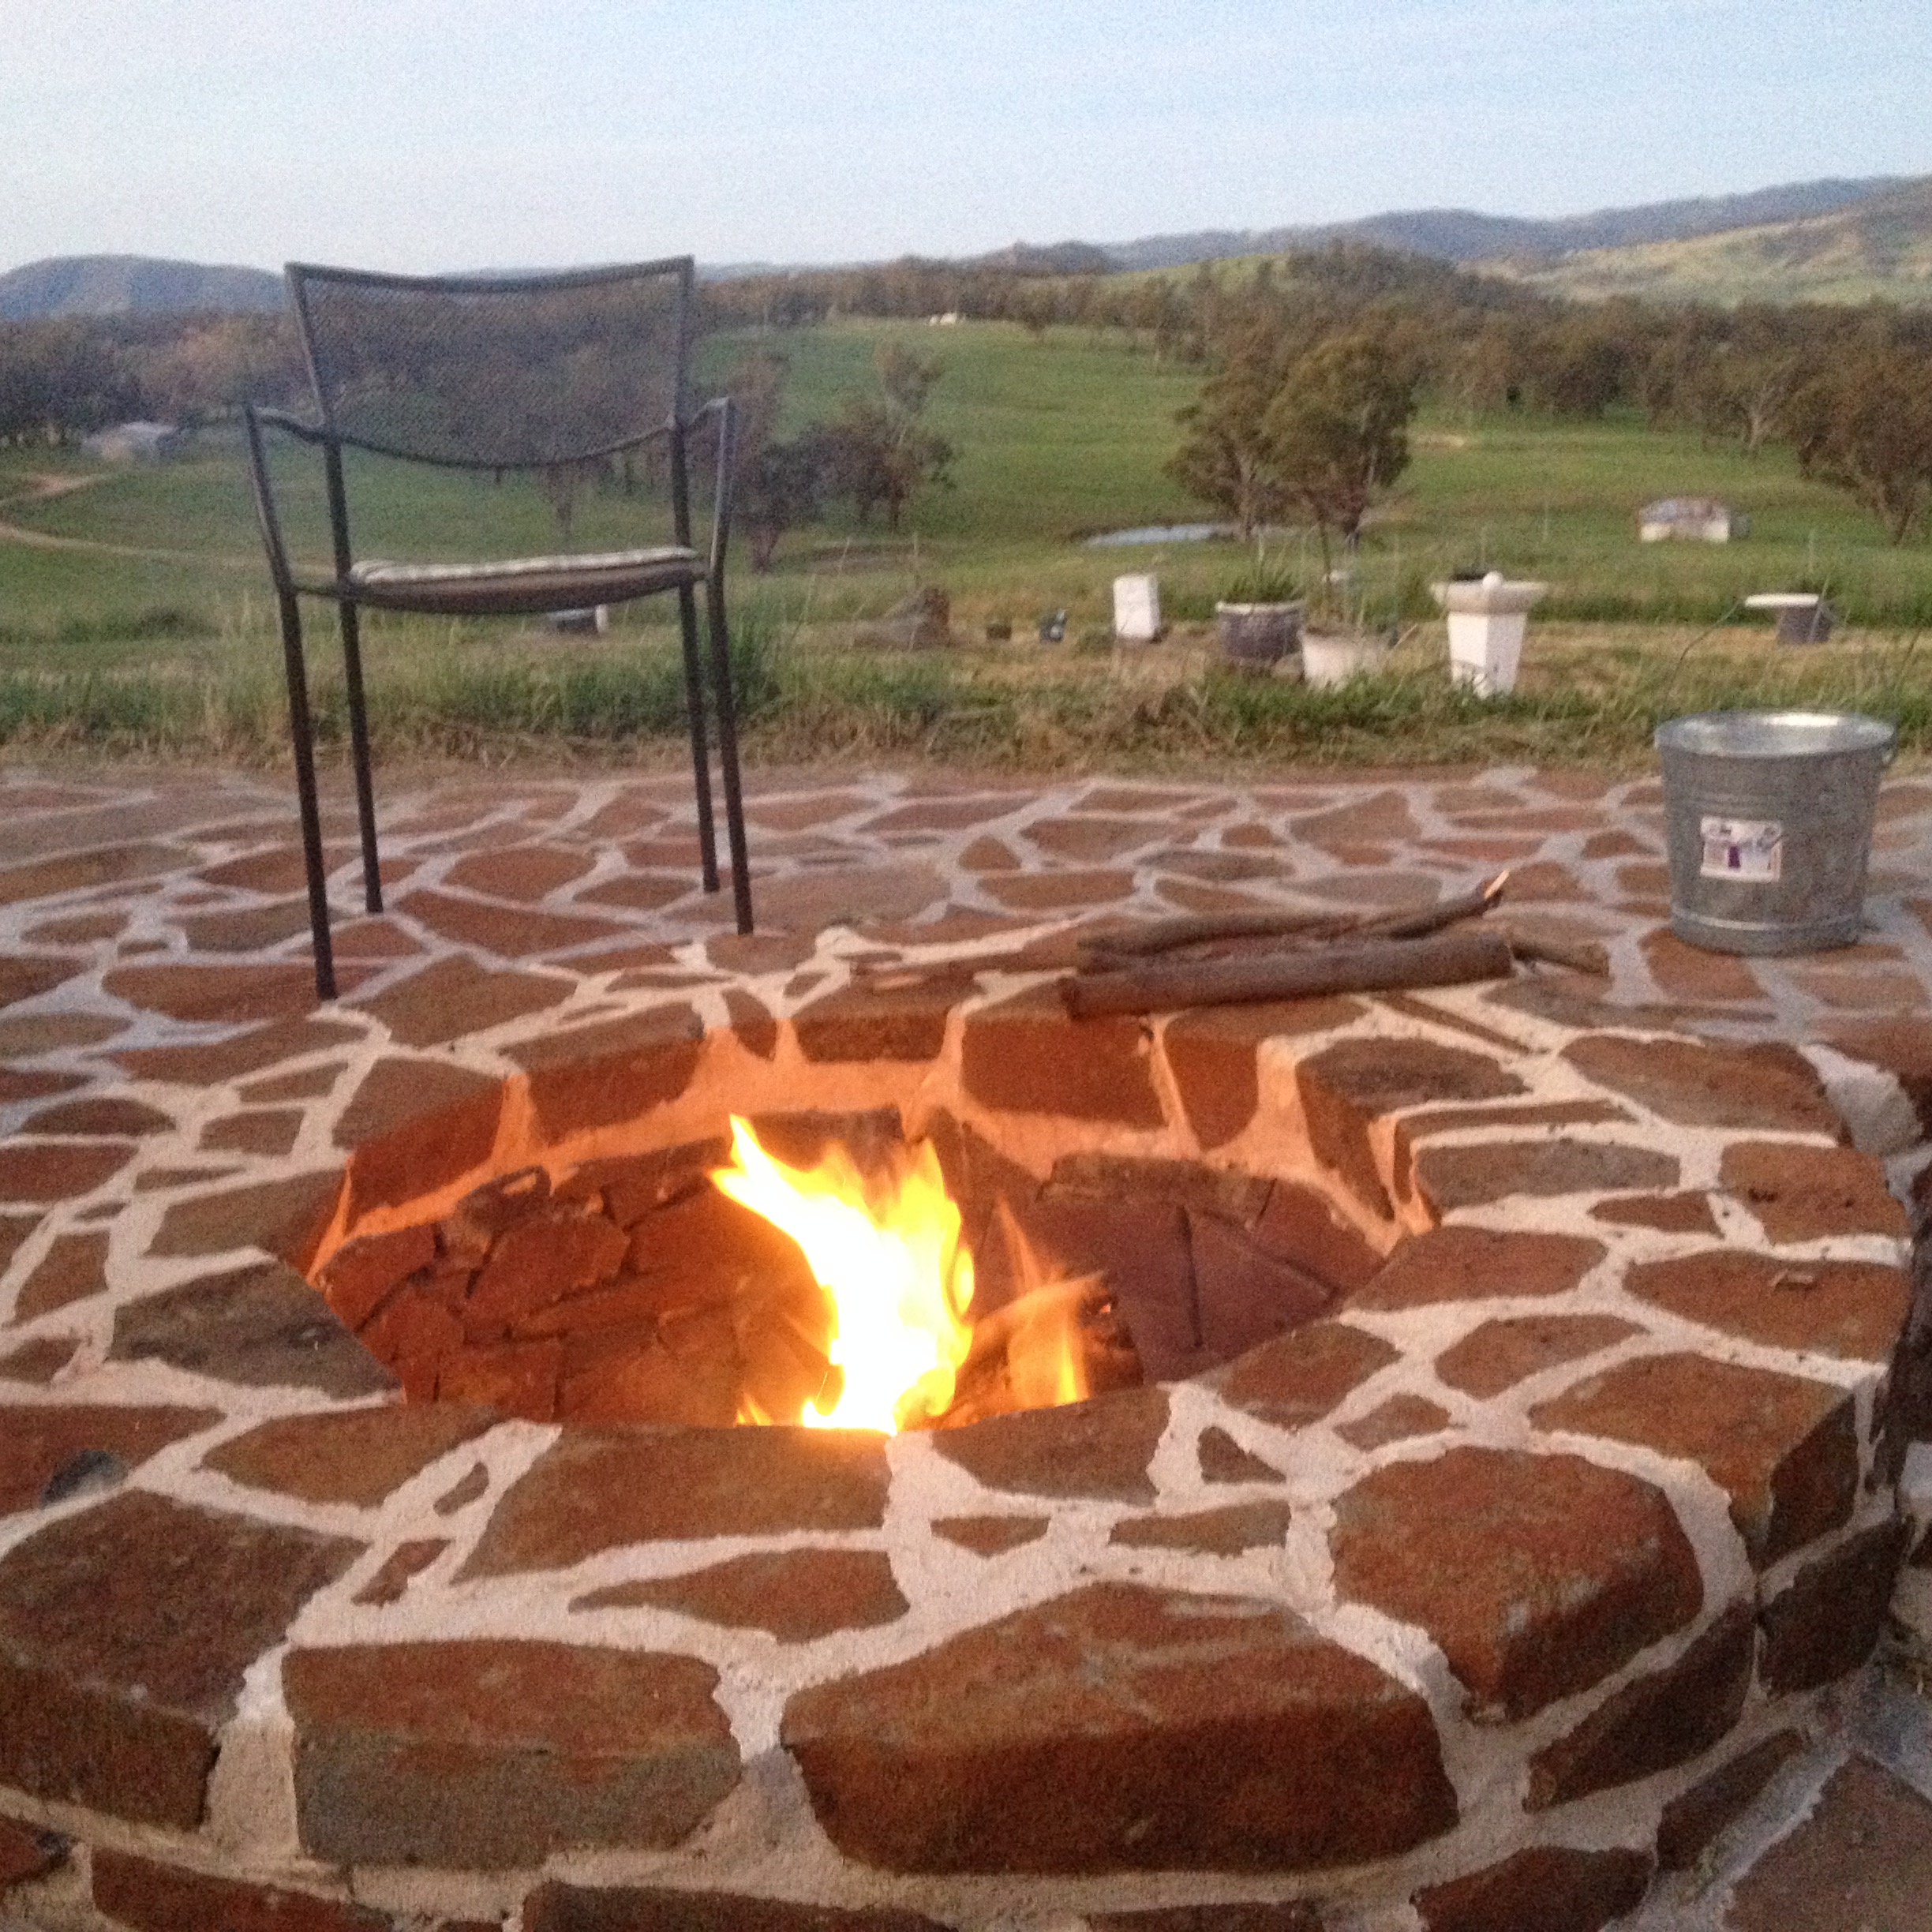 Fire pit made of basalt